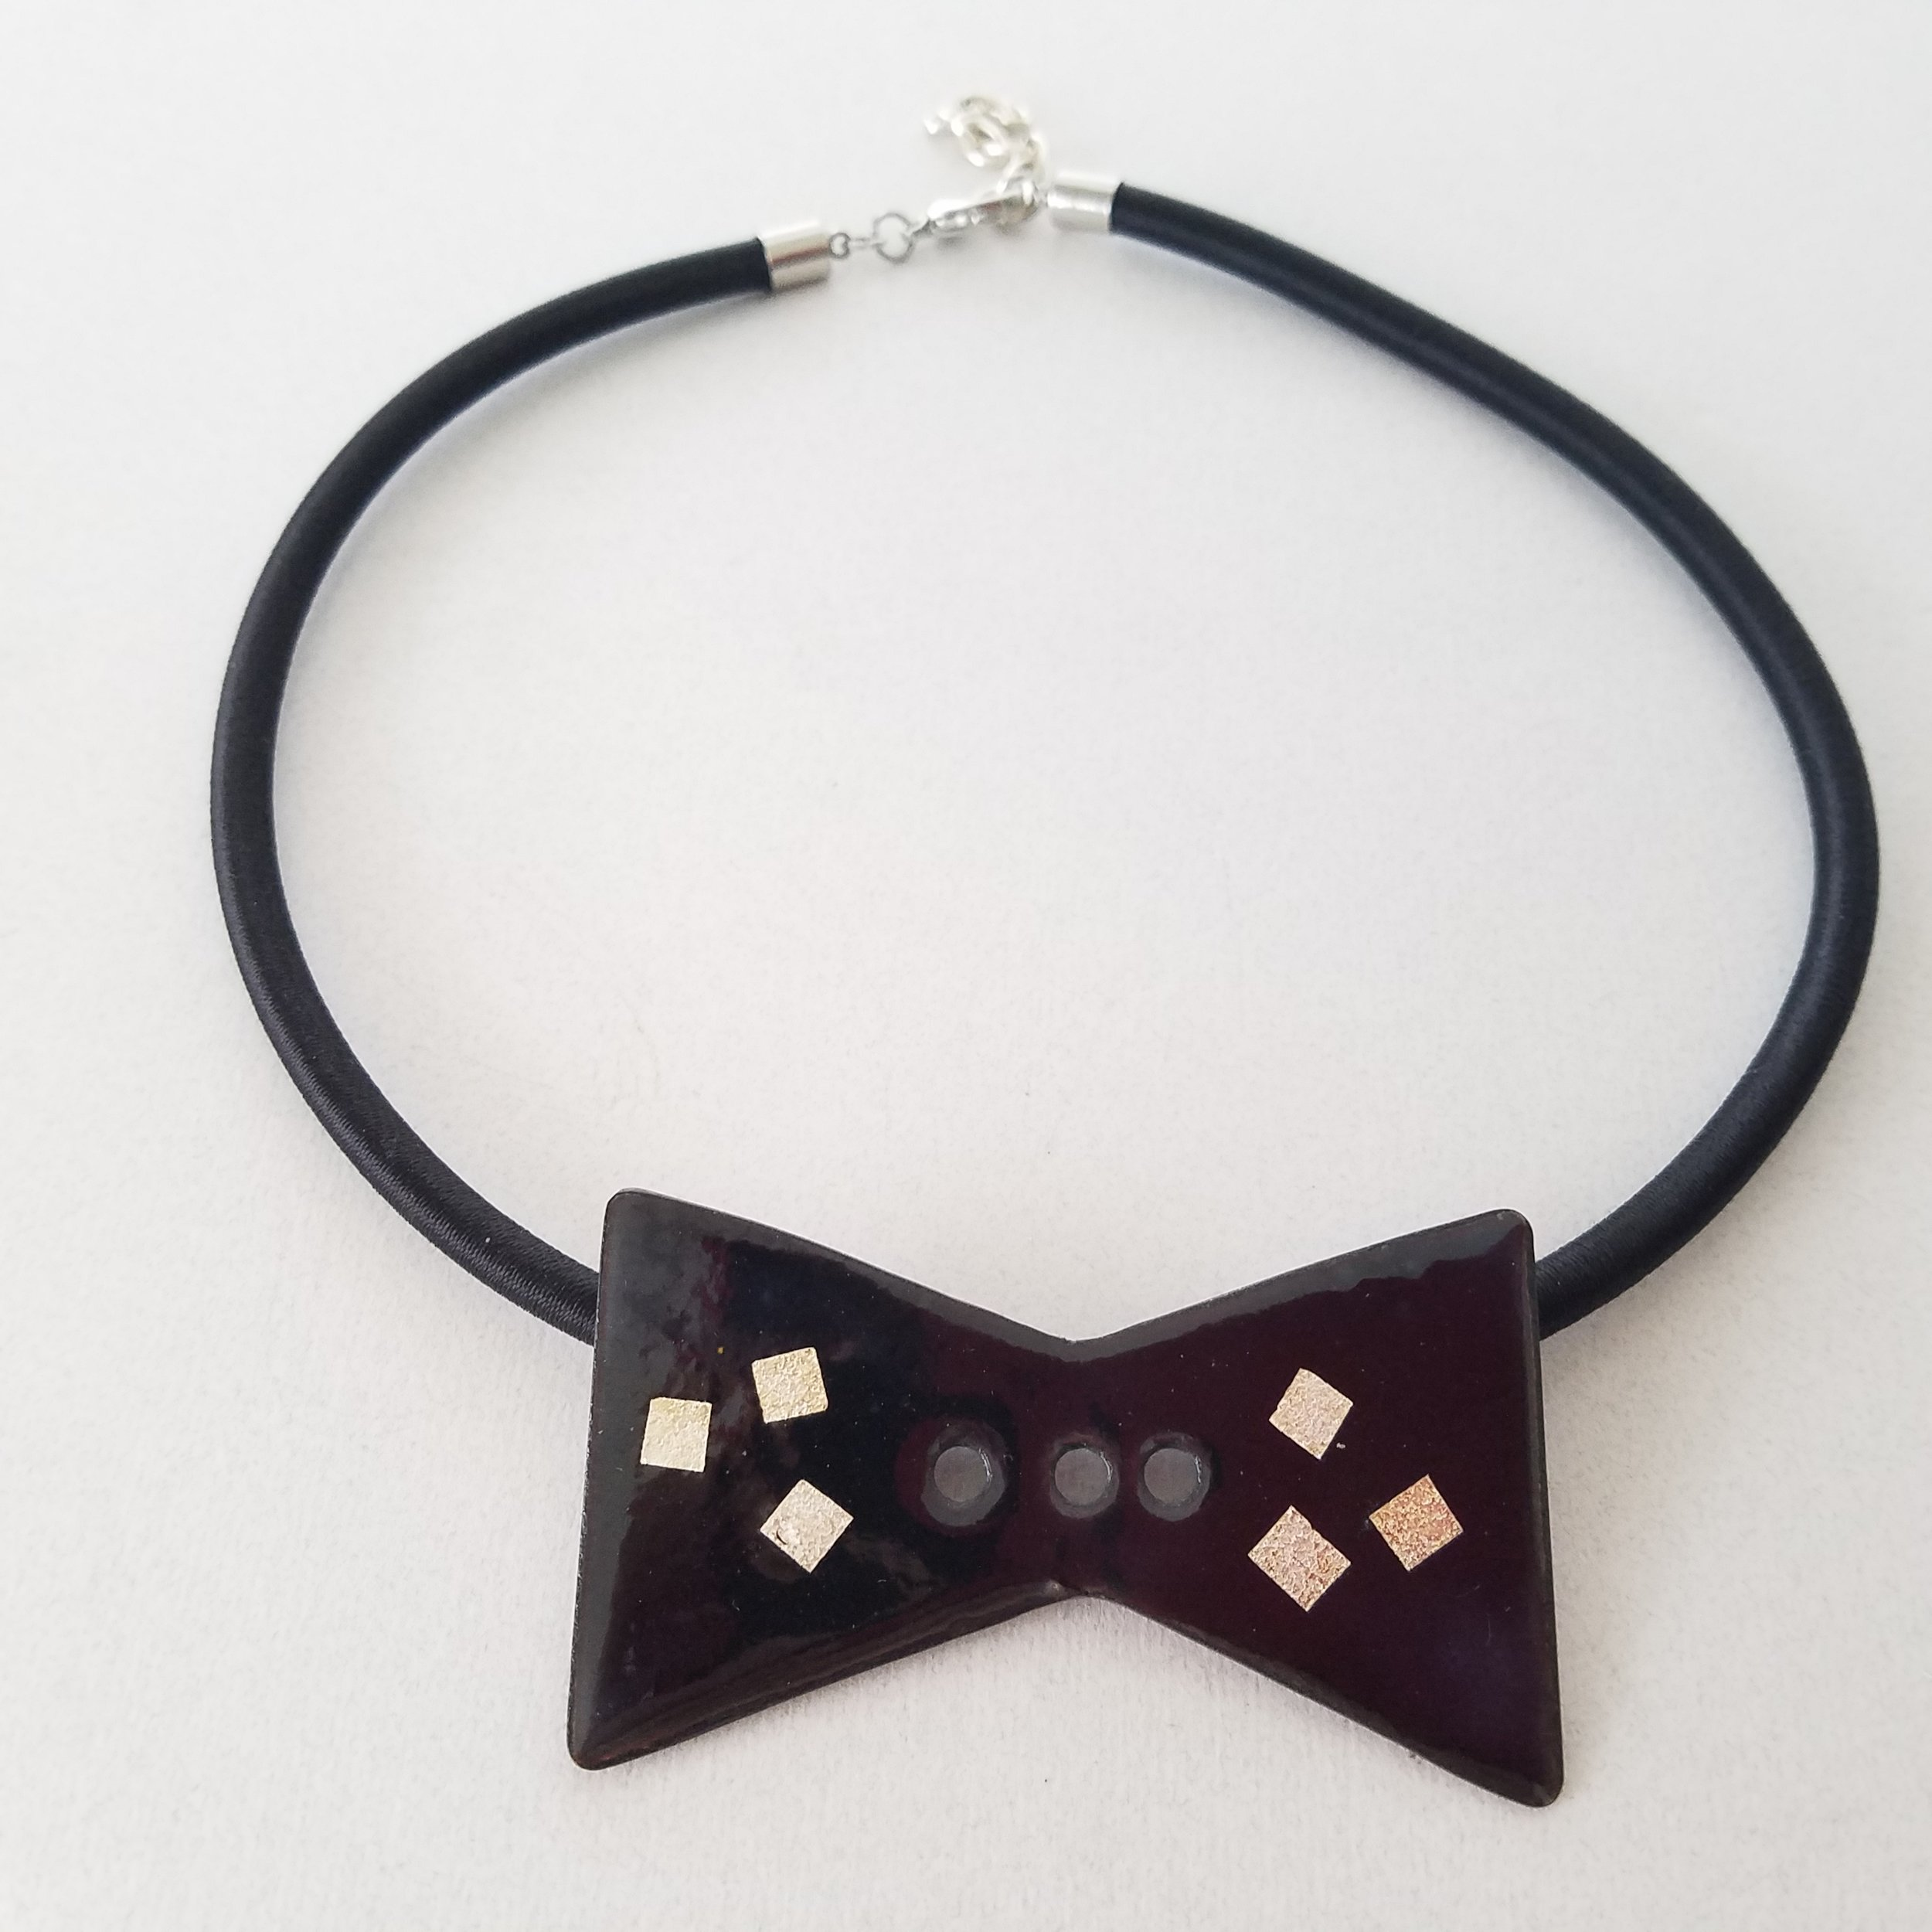 copper enamel bow tie.jpg